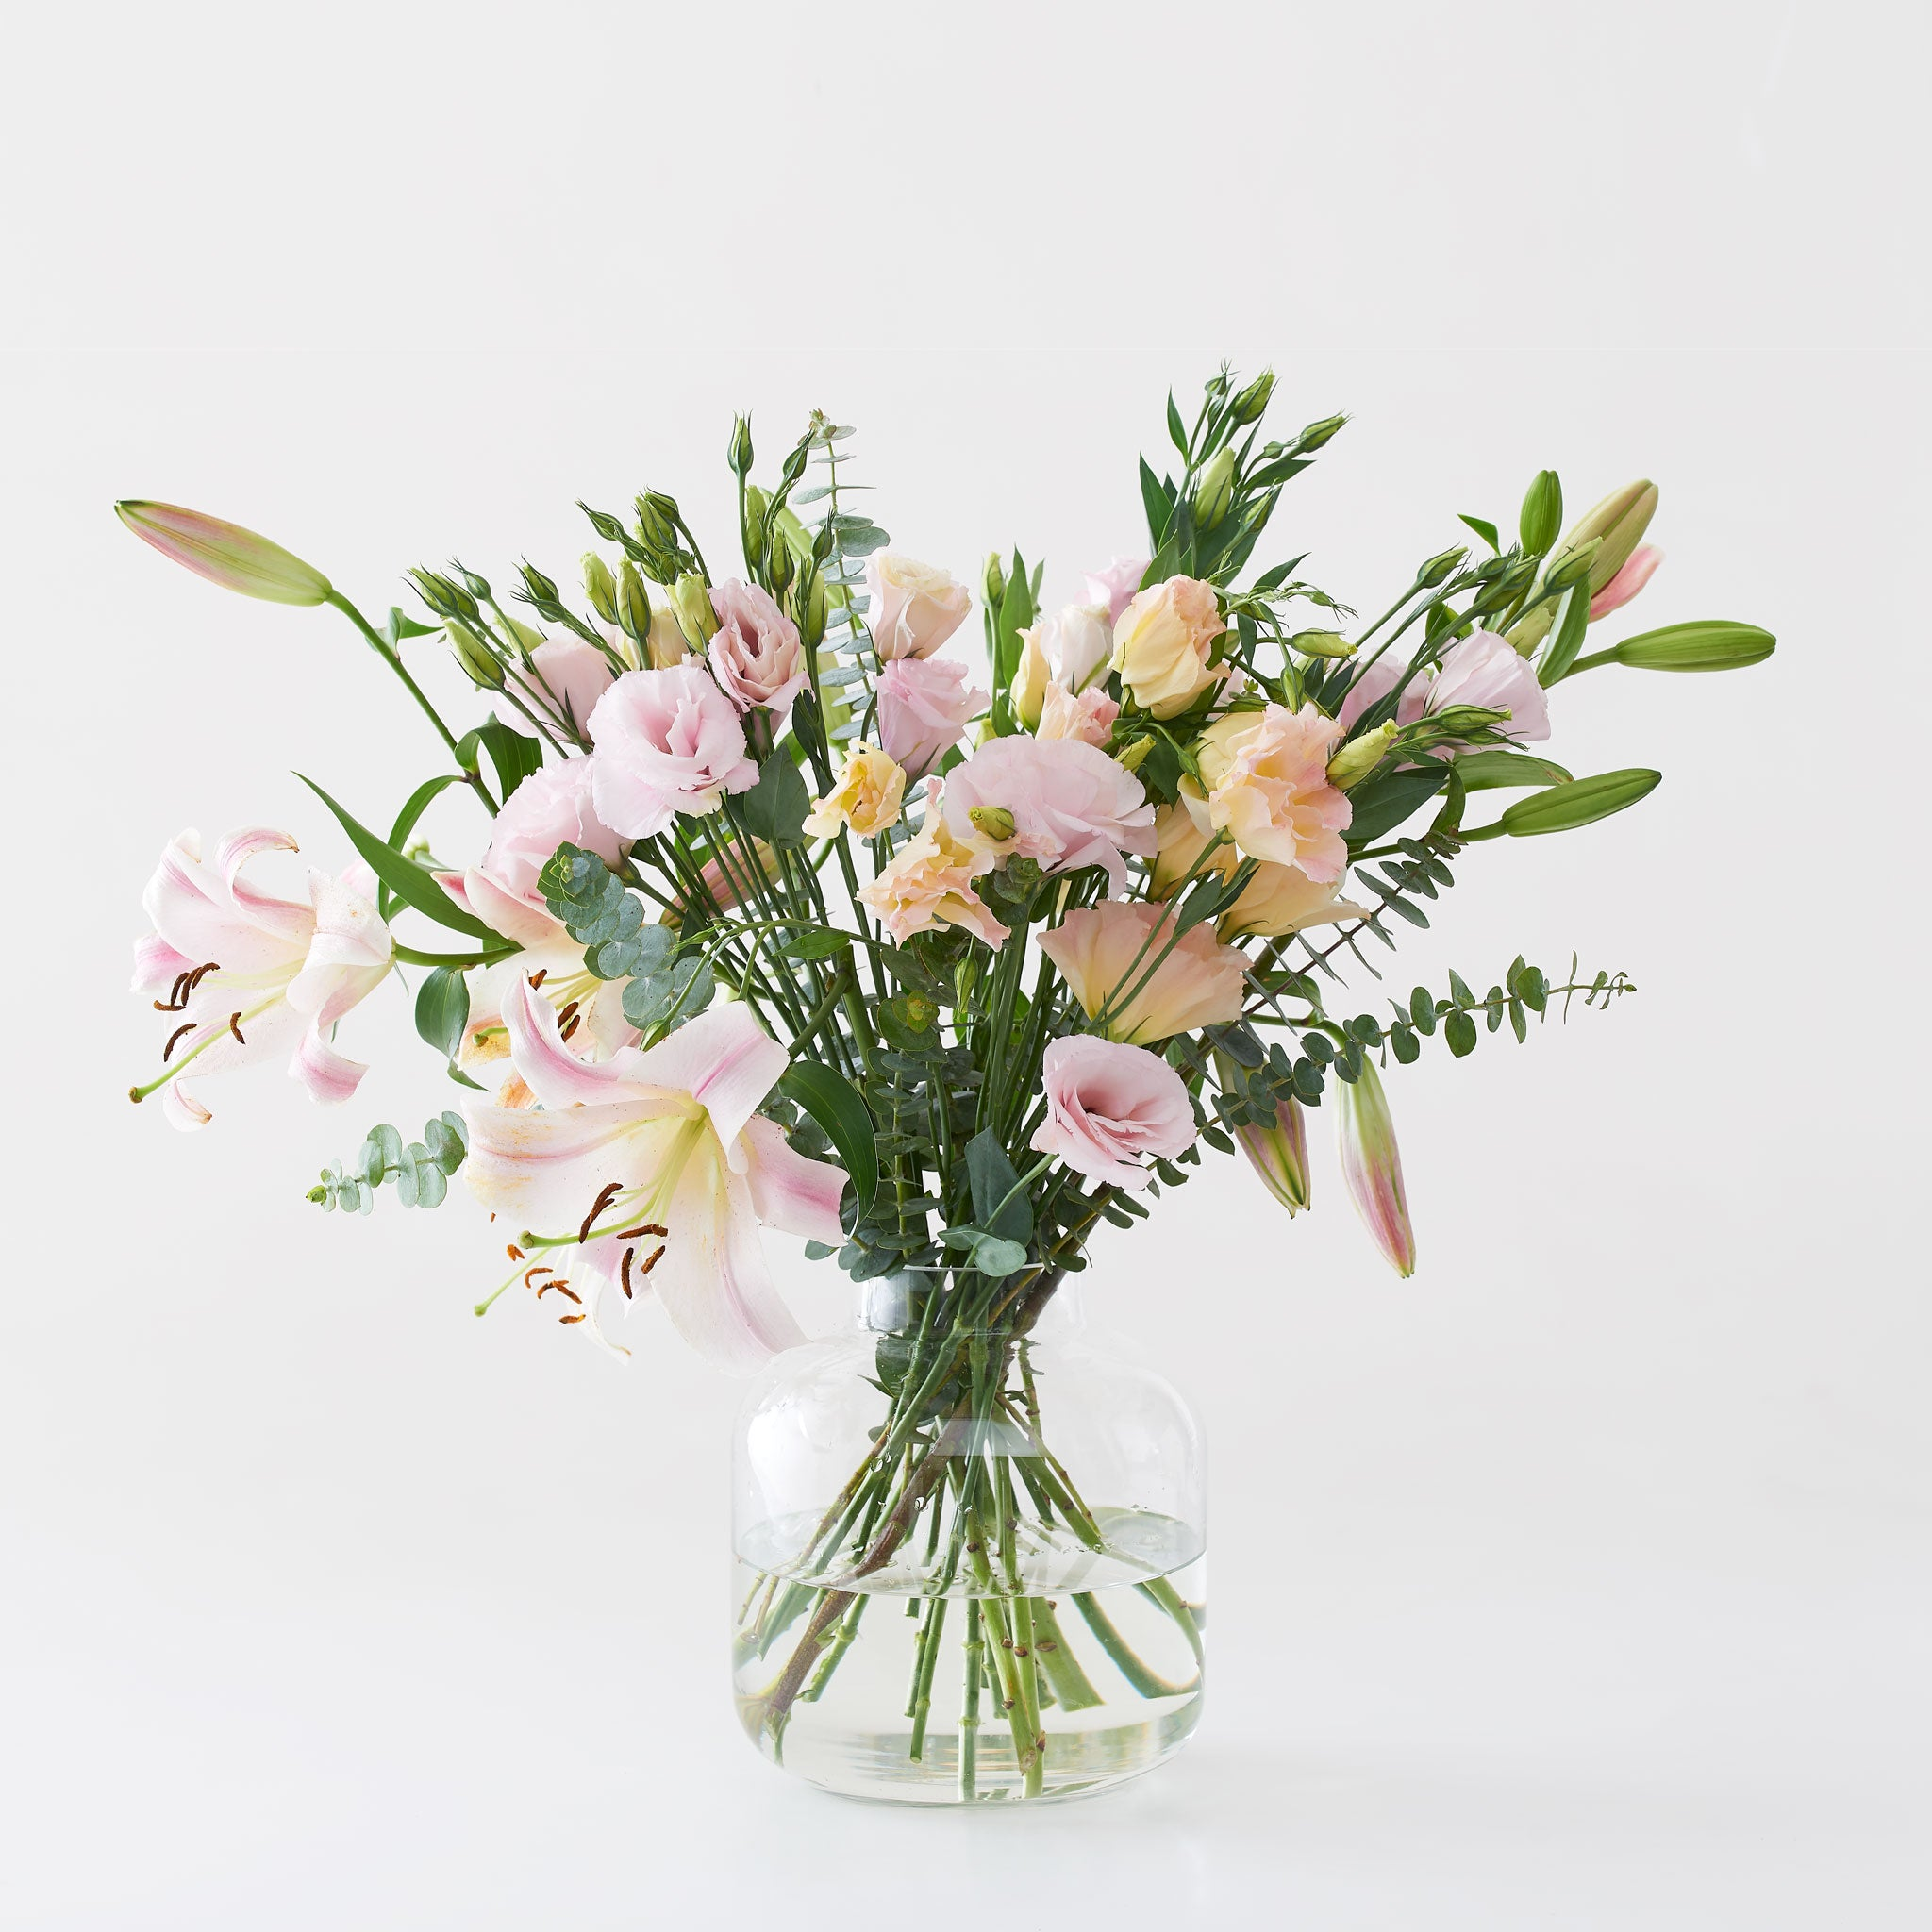 Photo of our Somewhere Only We Know flower arrangement in a vase including the lily, lisianthus and designer pennygum. Julep offers flower delivery Johannesburg and flowers in a box.